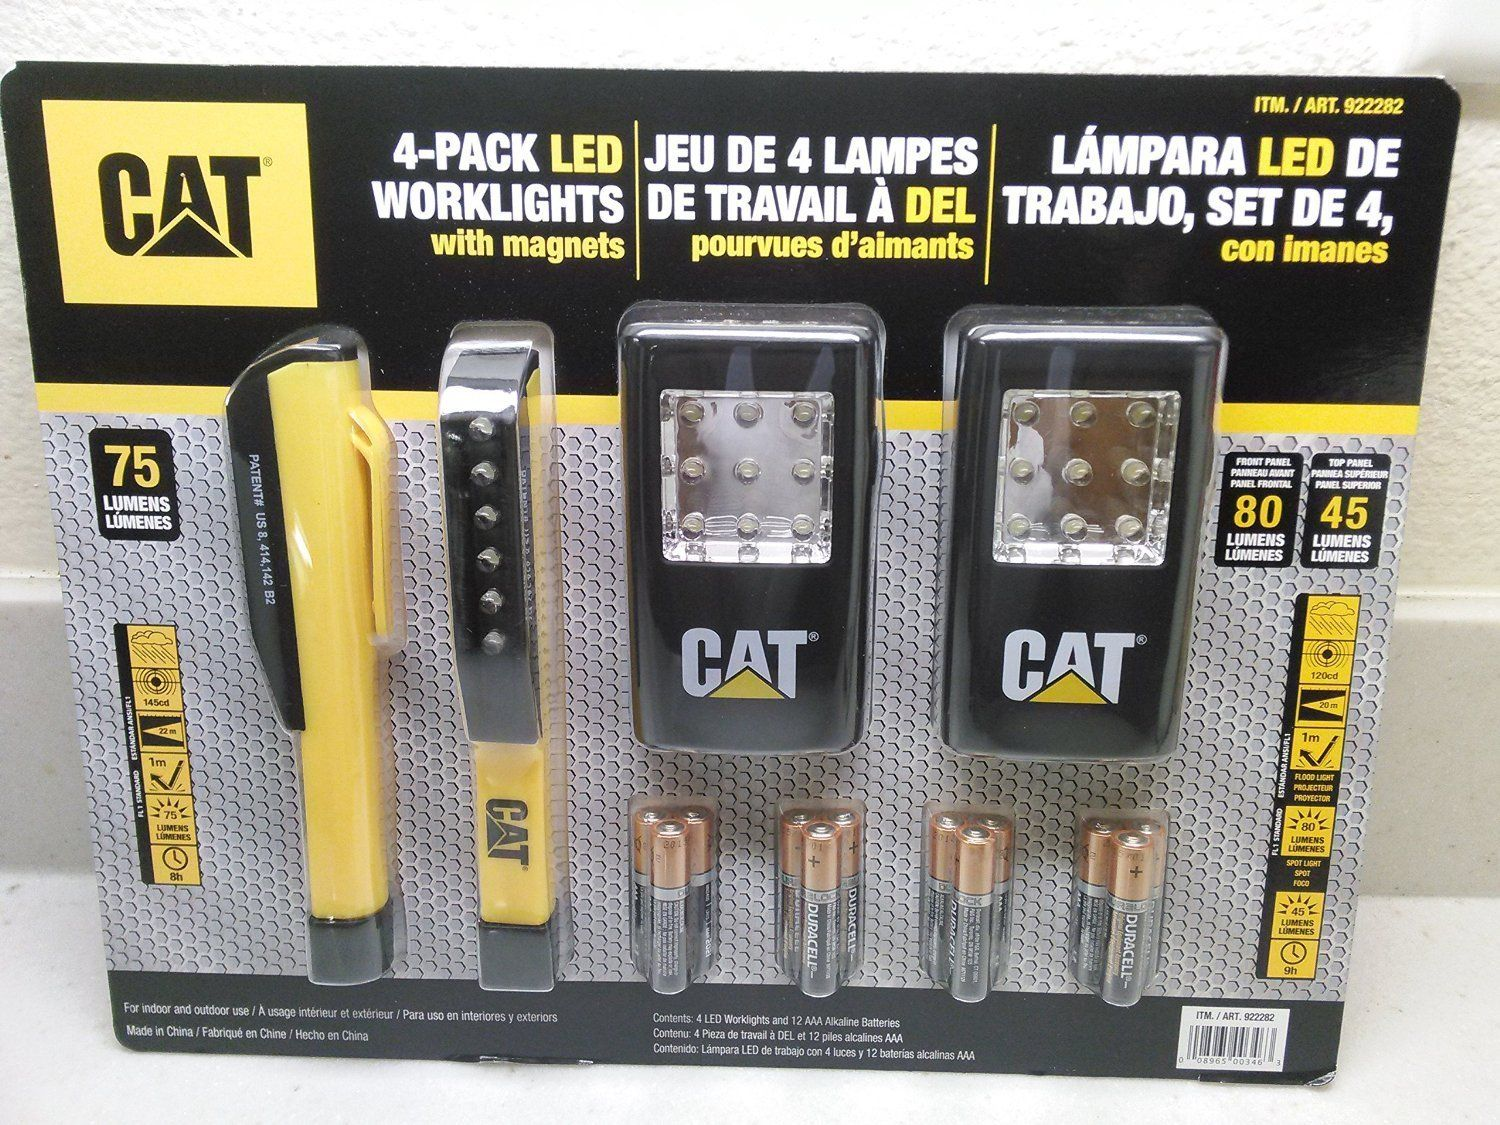 Cat 4 Pack Led Worklights With Magnets And Includes 12 Duracell Aaa Alkaline Batteries For More Information Visit Now Campi Duracell Alkaline Battery Led